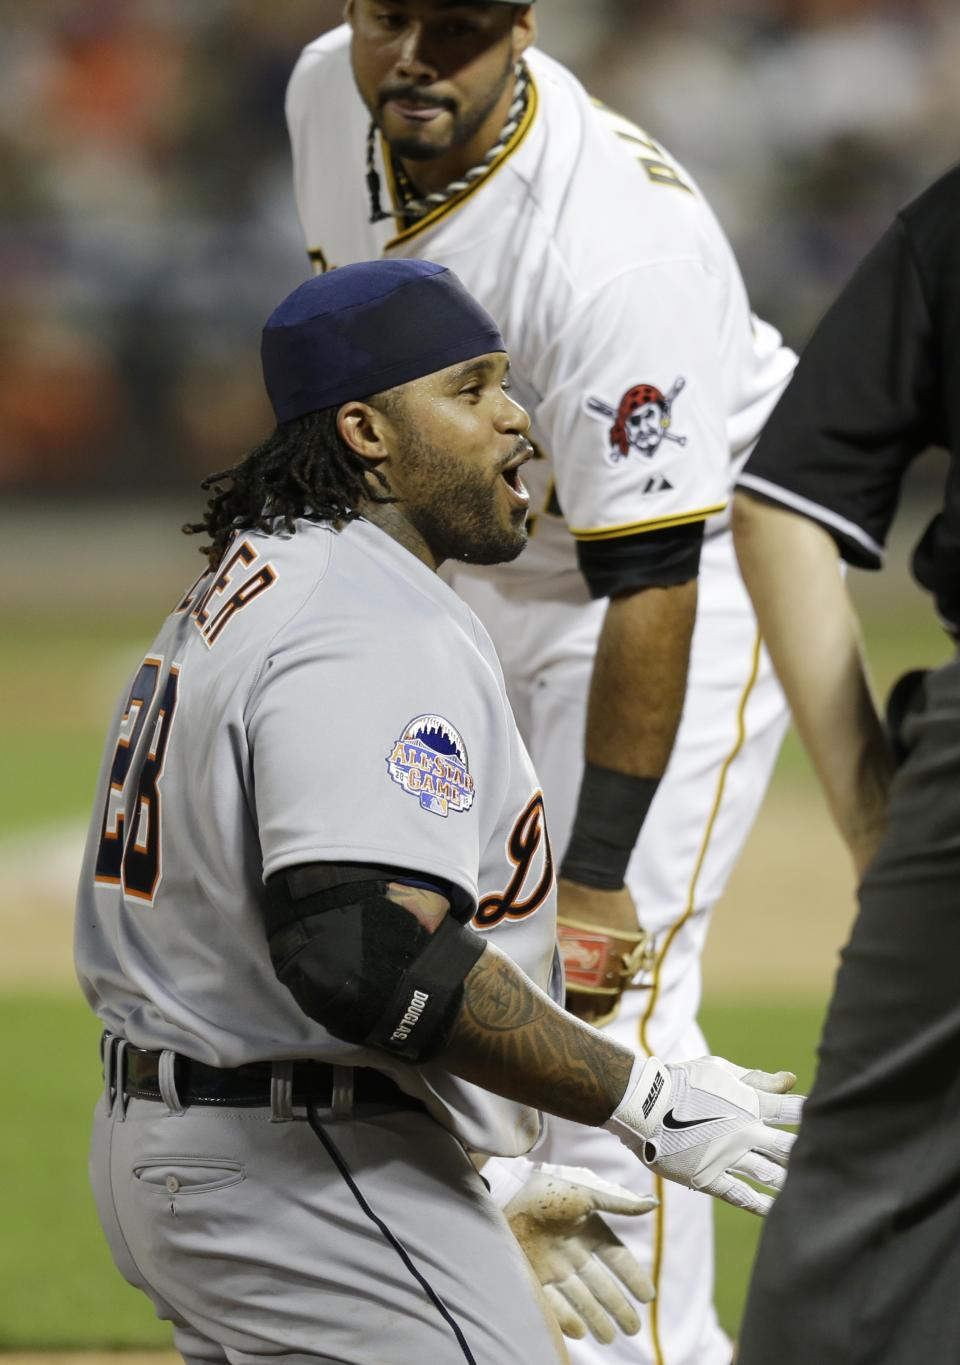 American League's Prince Fielder, of the Detroit Tigers, reacts after sliding into third base on a triple in the ninth inning of the MLB All-Star baseball game, on Tuesday, July 16, 2013, in New York. Behind is National League's Pedro Alvarez, of the Pittsburgh Pirates. (AP Photo/Kathy Willens)